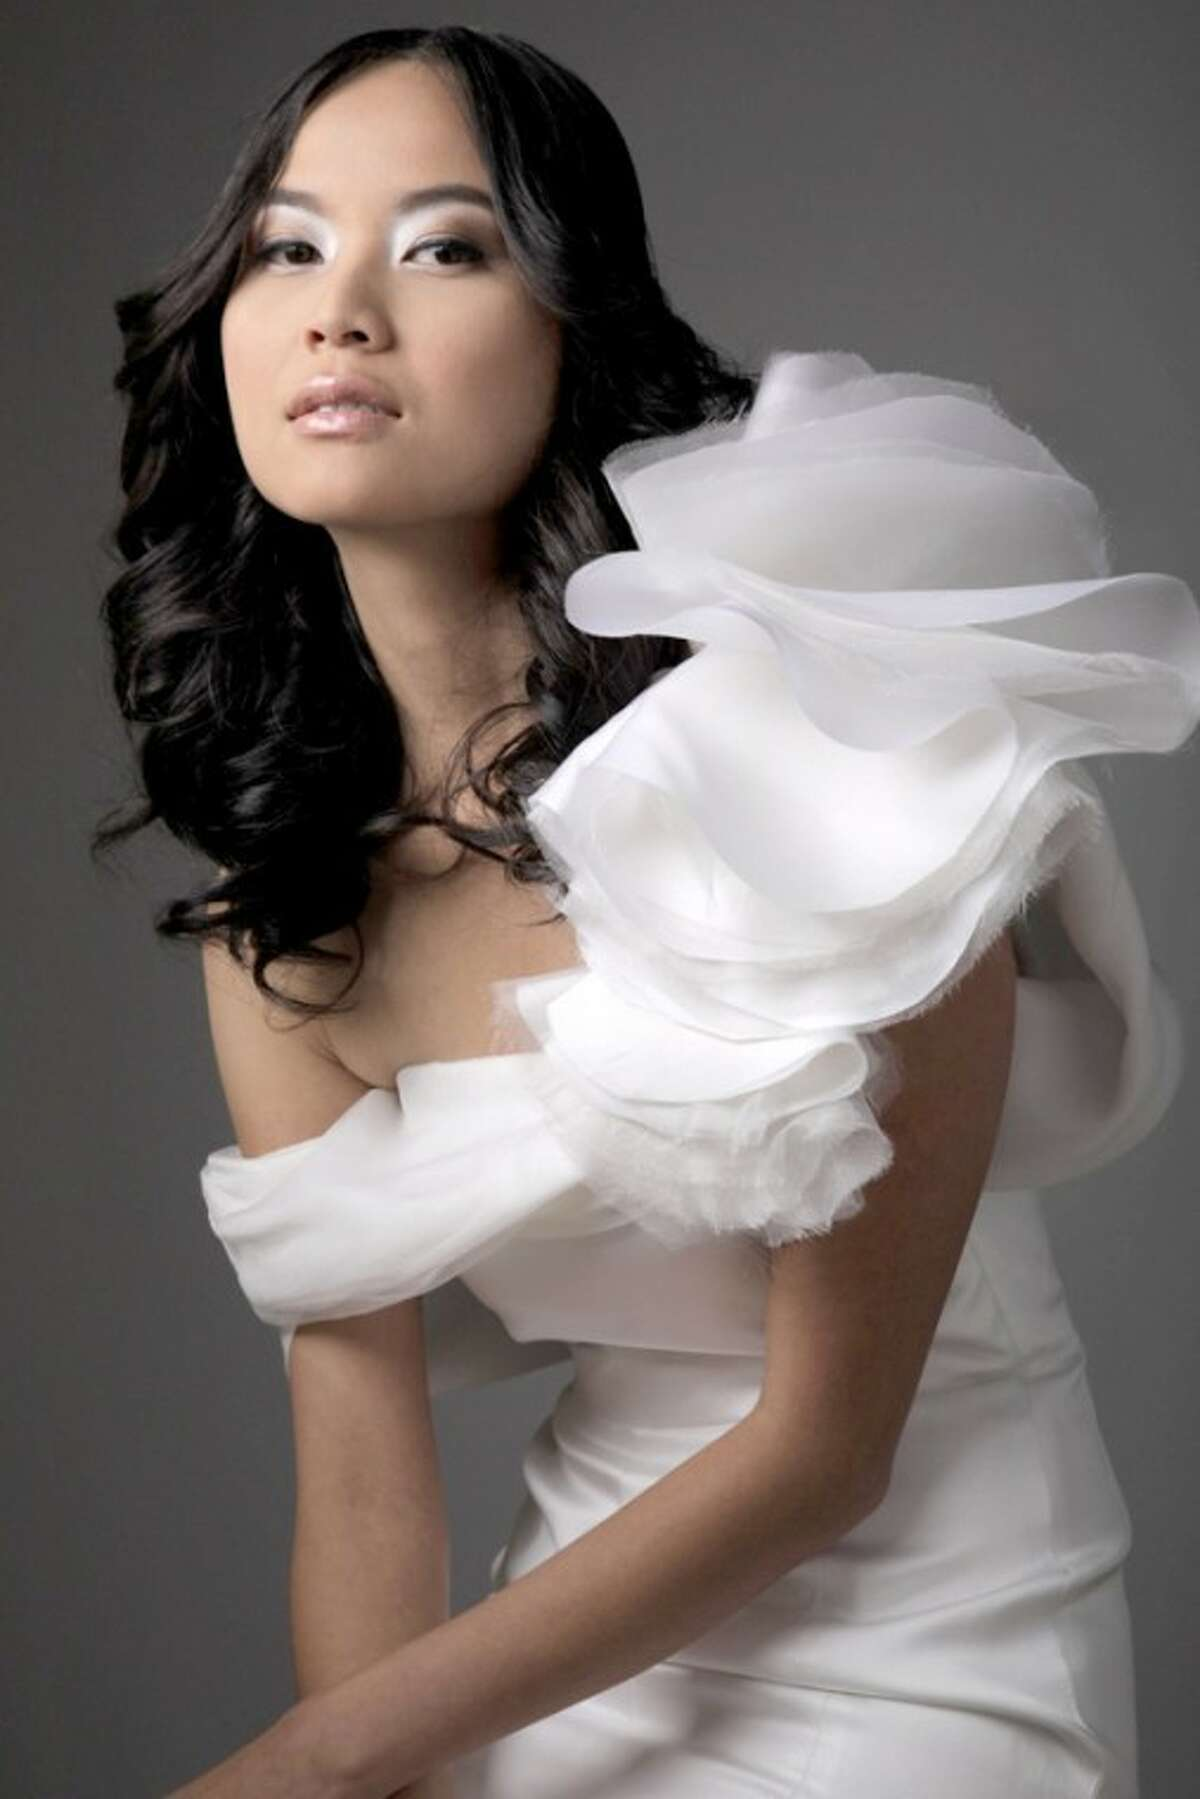 Fashions from the Chloe Dao wedding collection.